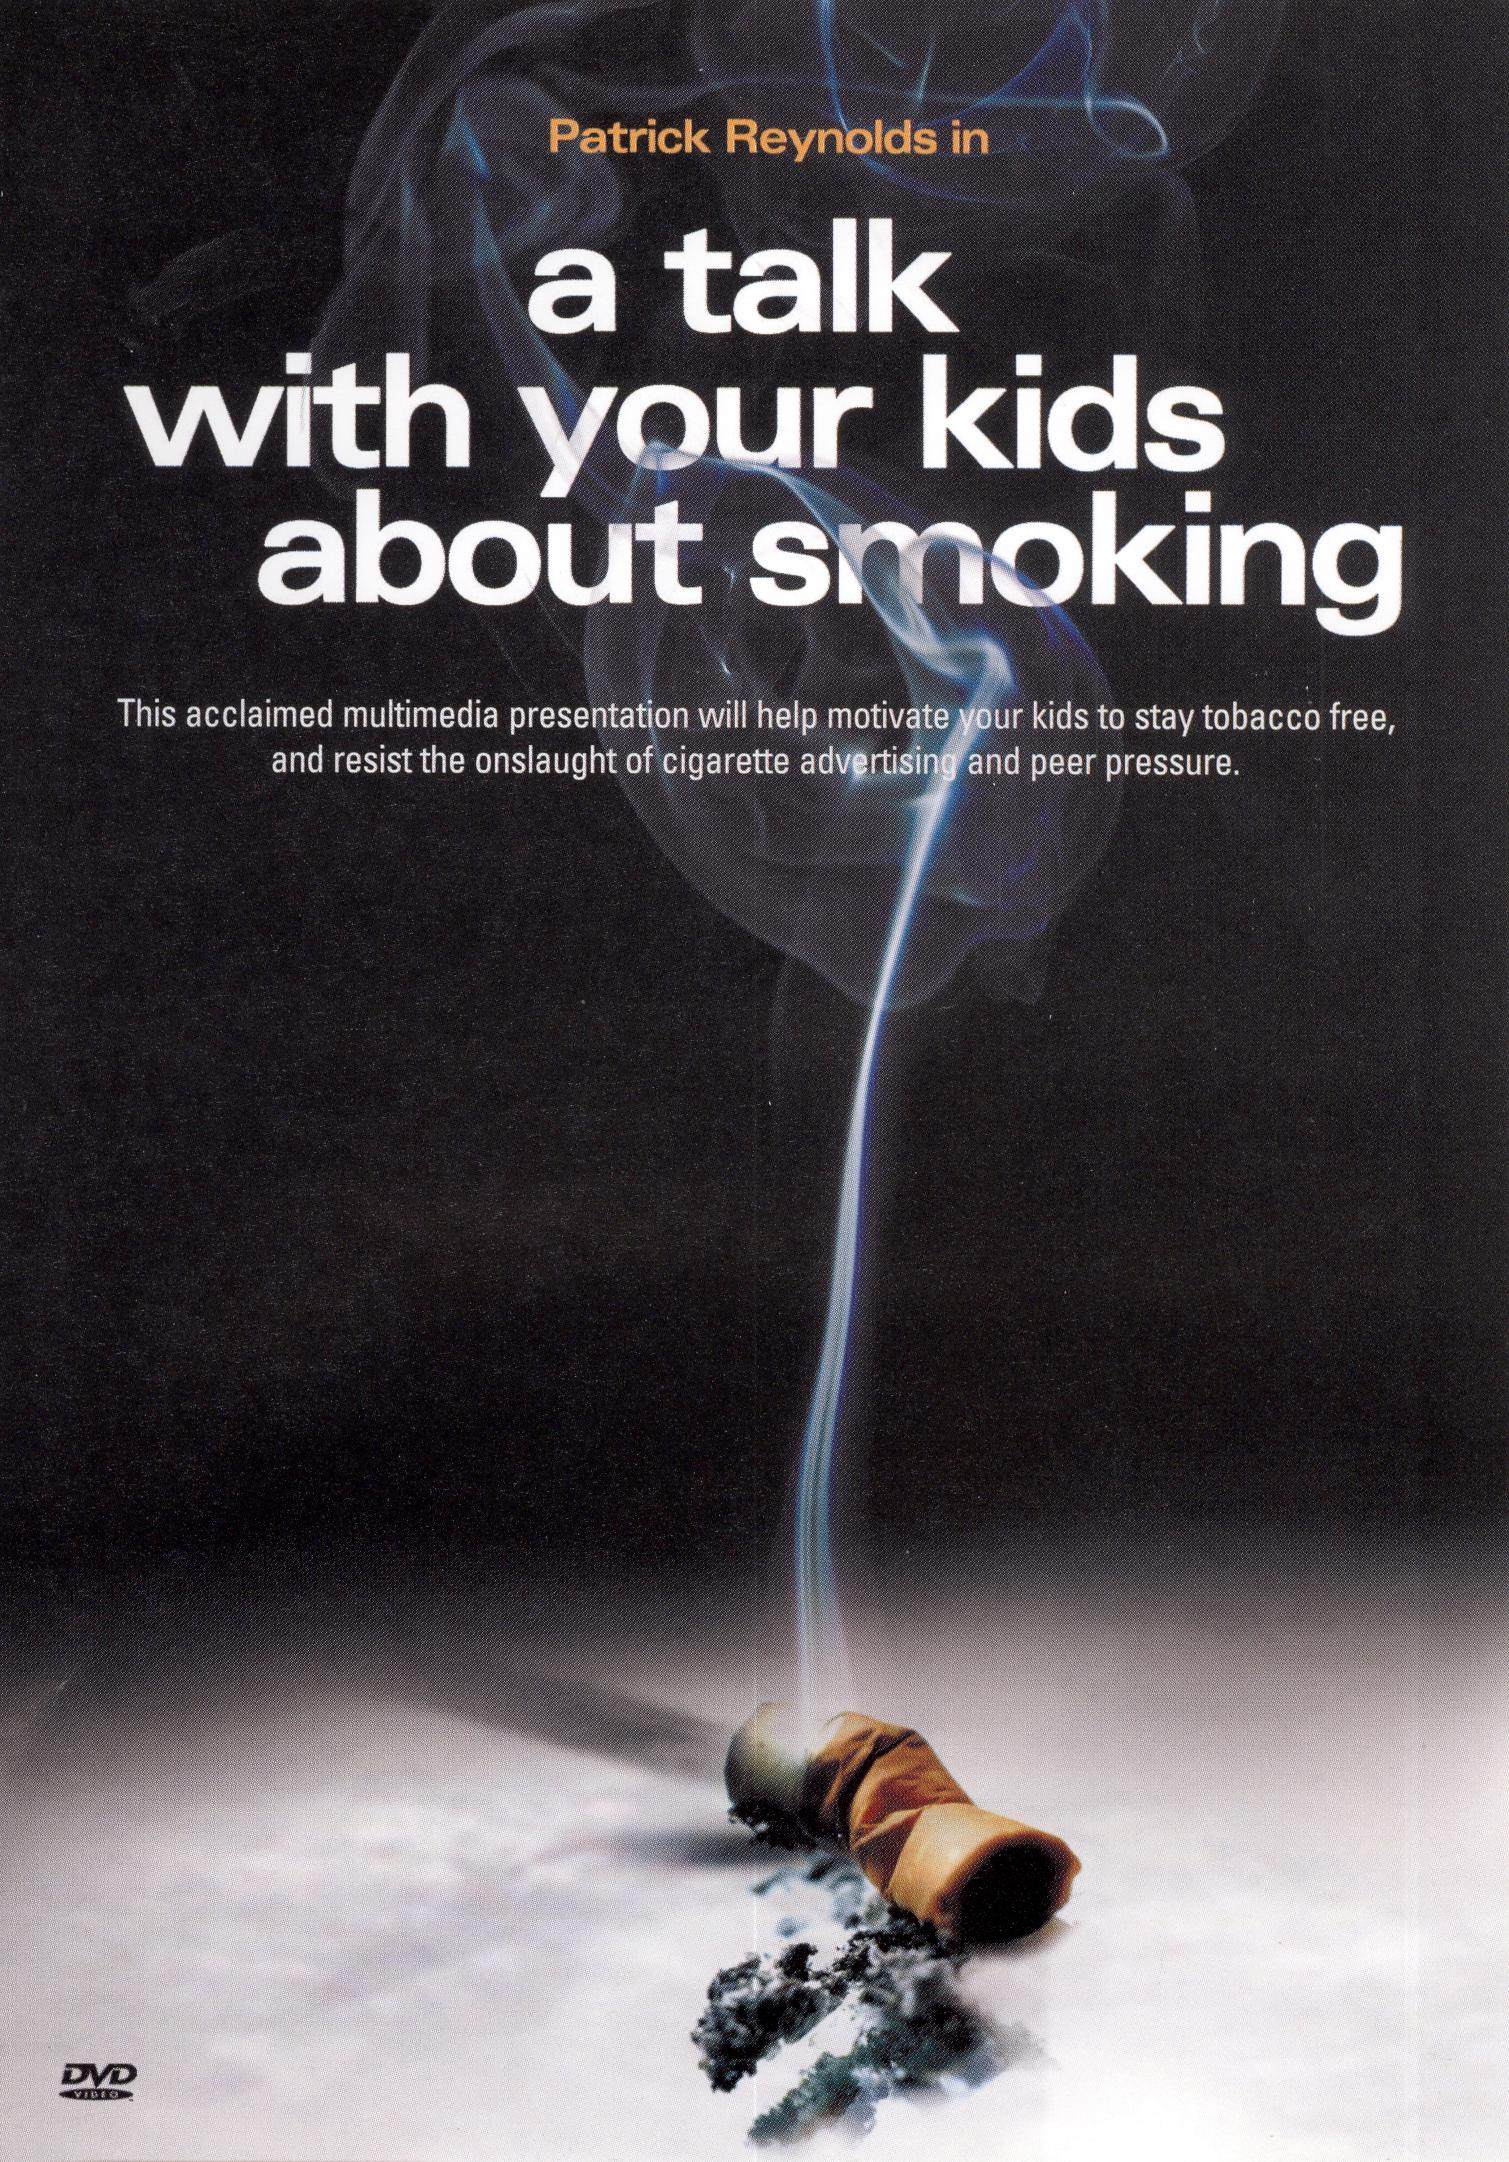 effectiveness of anti smoking advertisement essay 183 million americans to try to quit smoking cigarettes 104,000 cigarette smokers to quit for good unlike the 2012 campaign, which aired for 12 consecutive weeks, the 2014 campaign aired in two phases, from february 3 to april 6 and from july 7 to september 7 phase 1 of the 2014 campaign ran ads.